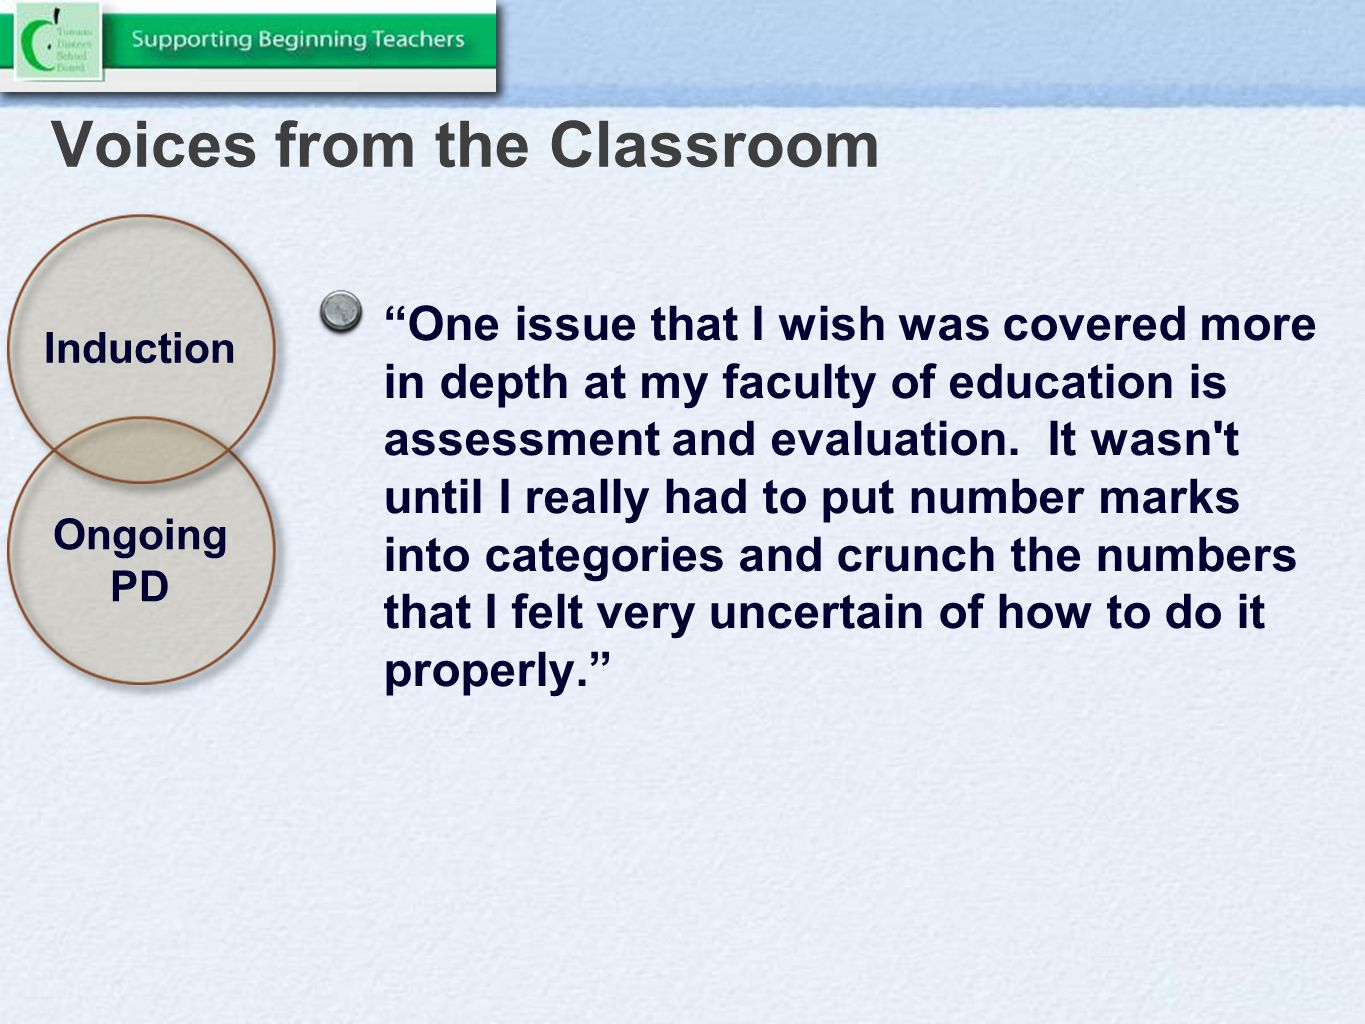 Voices from the Classroom One issue that I wish was covered more in depth at my faculty of education is assessment and evaluation.